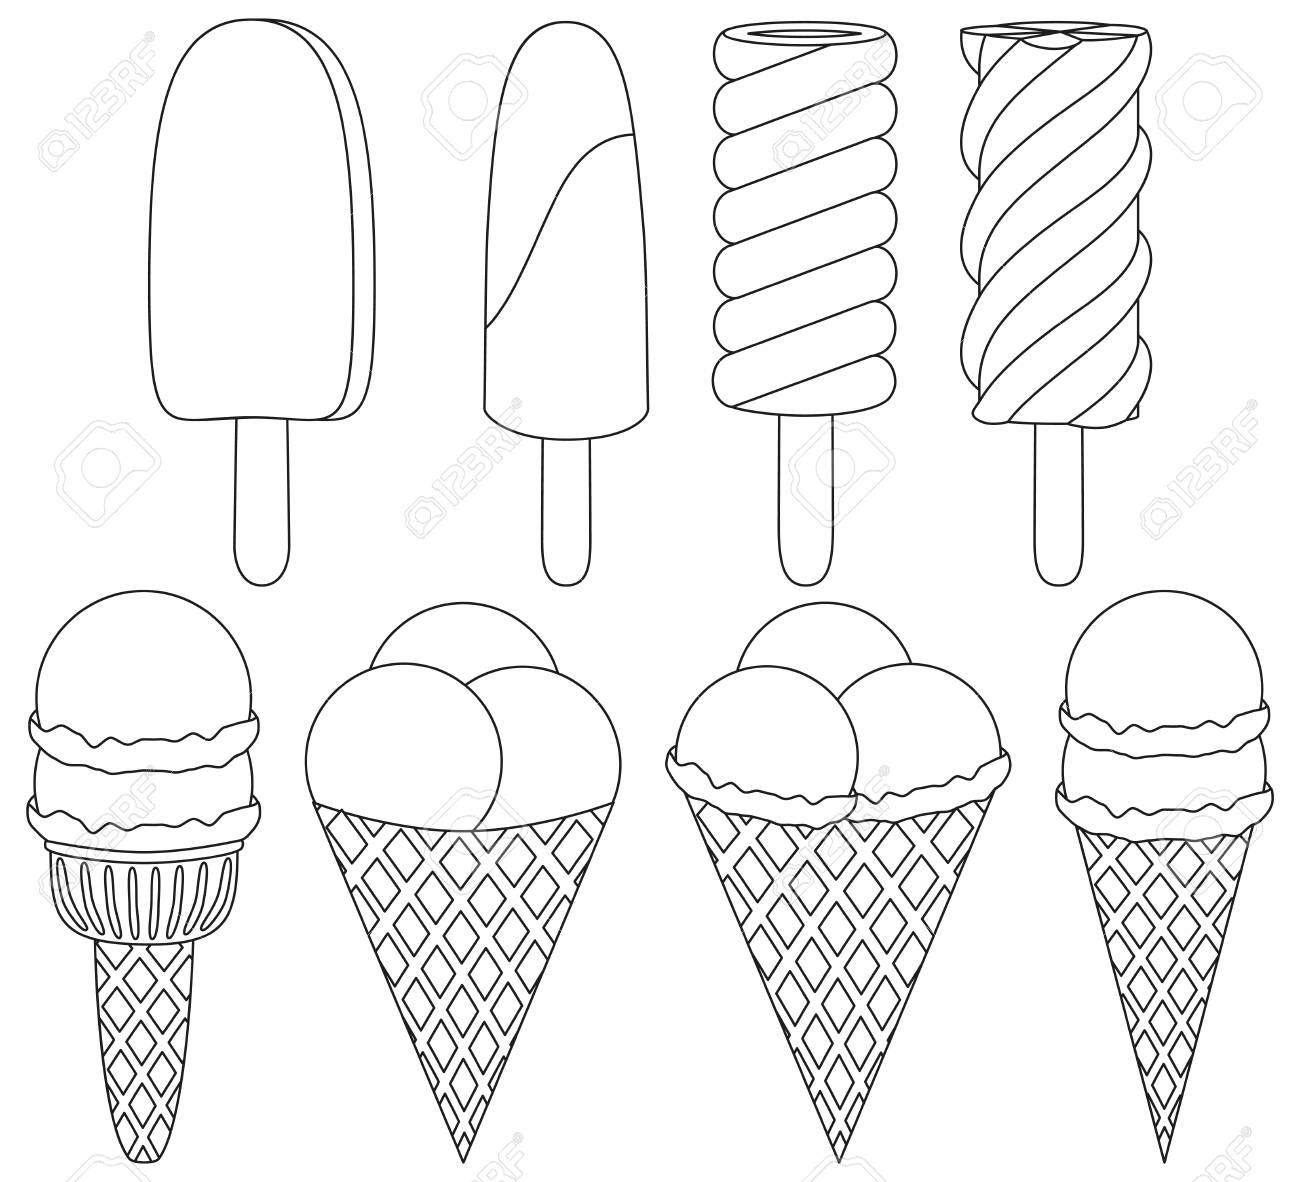 Ice Cream Cone Black And White Icon Set Elements Coloring Book Page For Adults